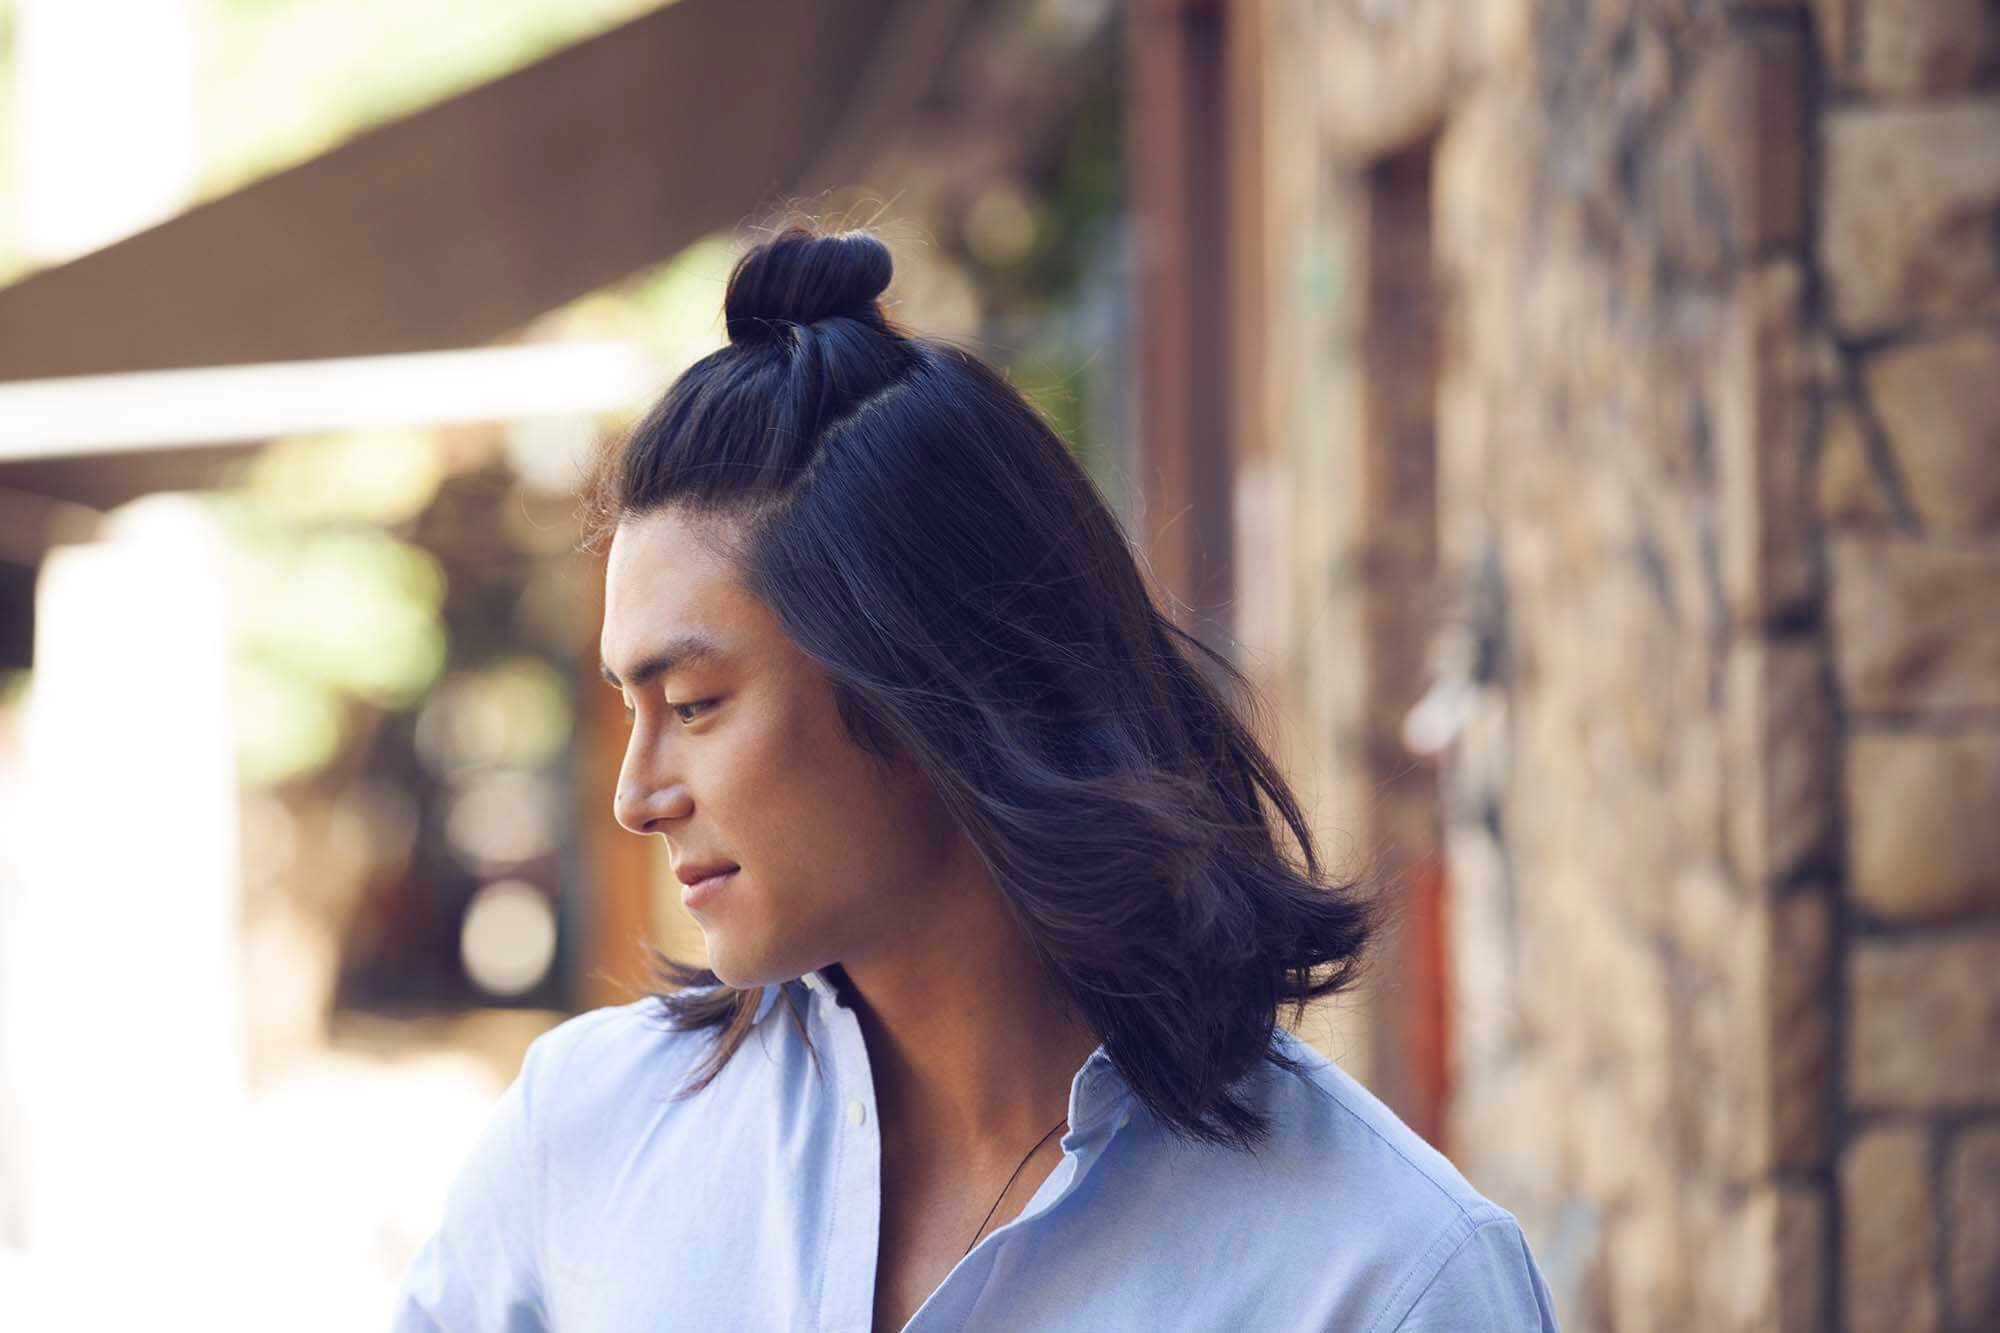 Styling Asian Hair: Asian Man Bun Half-Bun: How To Create The Look For